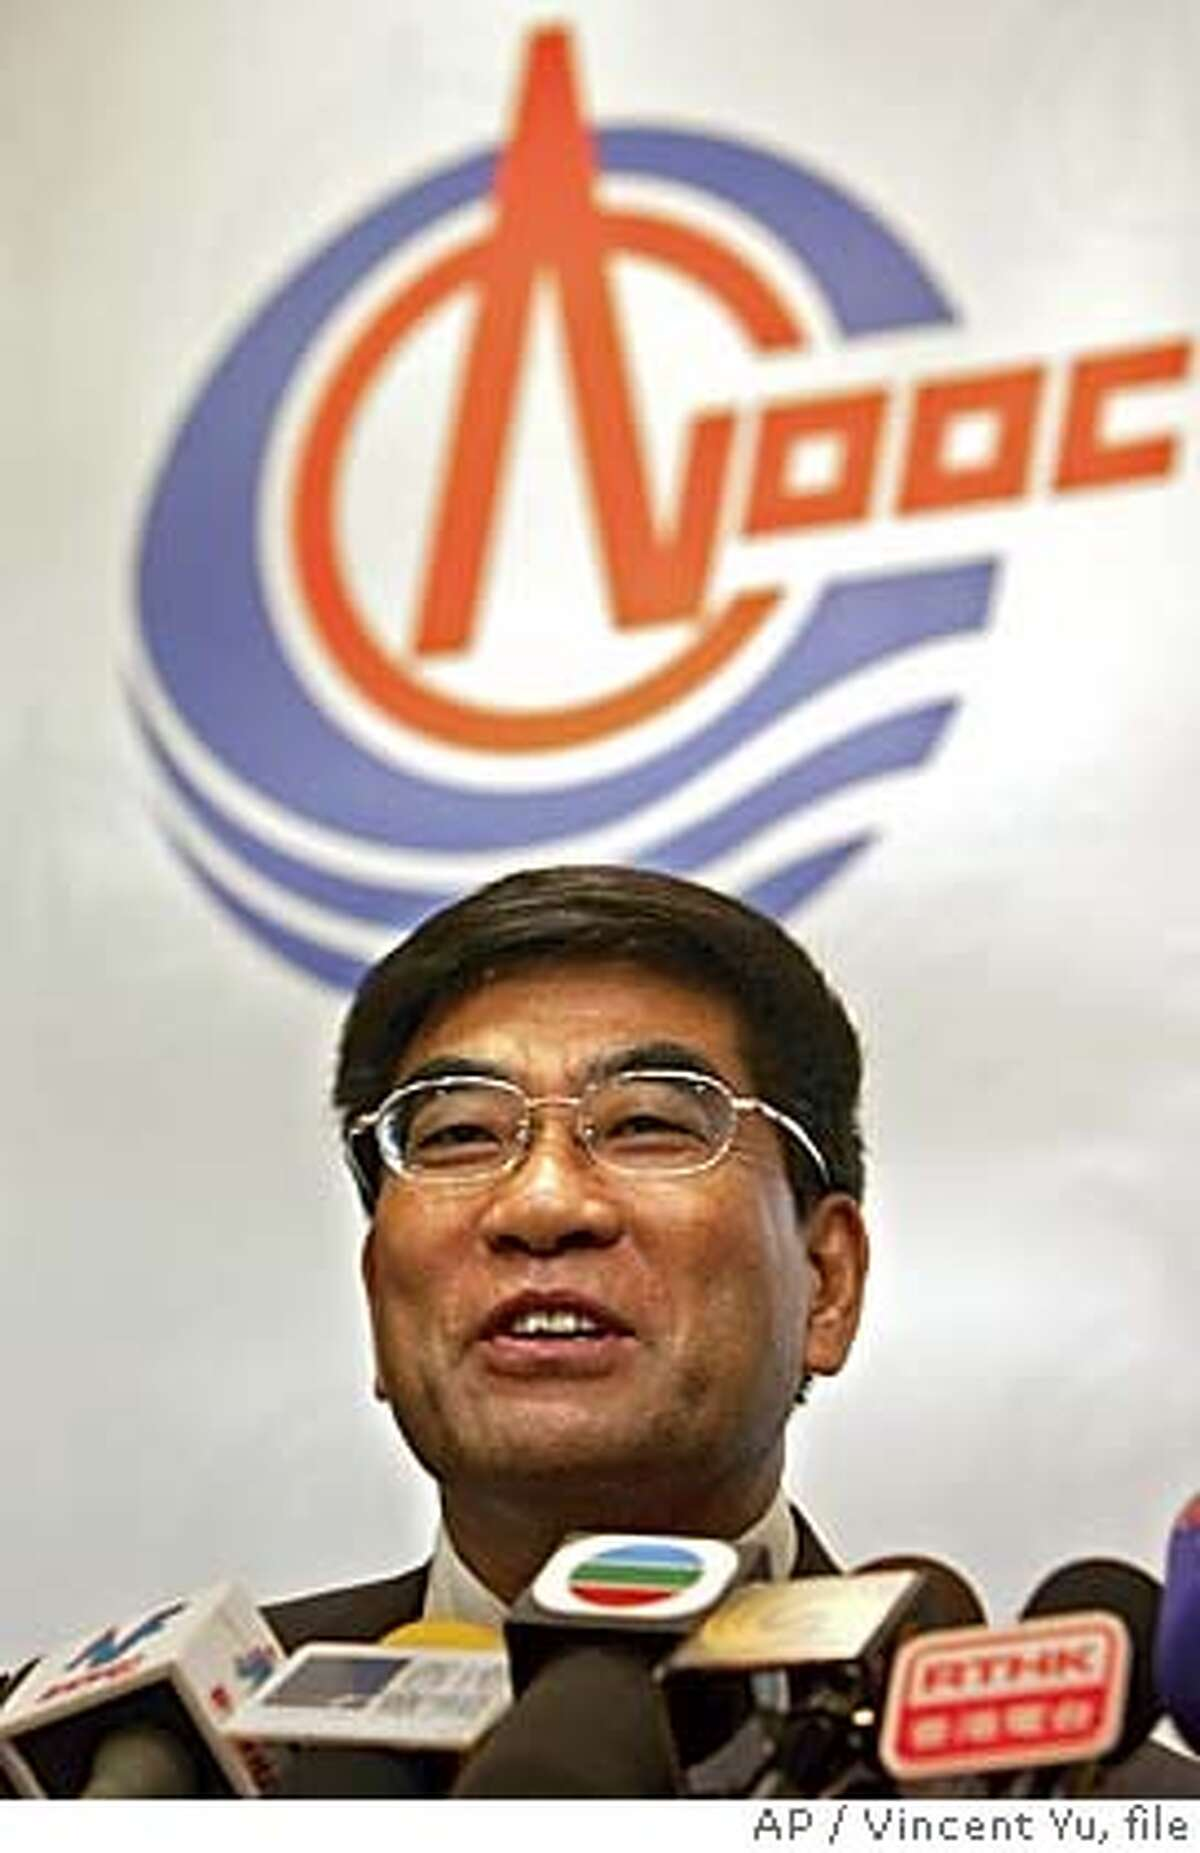 **FILE** Chairman and Chief Executive officer of China National Offshore Oil Corporation ( CNOOC ) Fu Chengyu smiles as he speaks to reporters during a press conference in Hong Kong in this Tuesday, March 29, 2005 file photo. Unocal Corp. said Monday, July 25, 2005 that it was prepared to drop its support for a takeover agreement with Chevron Corp. and accept an acquisition by CNOOC Ltd. had the Chinese state-owned oil company raised its bid sufficiently enough to offset regulatory and financial risks. (AP Photo/Vincent Yu, file) MARCH 29, 2005 FILE PHOTO